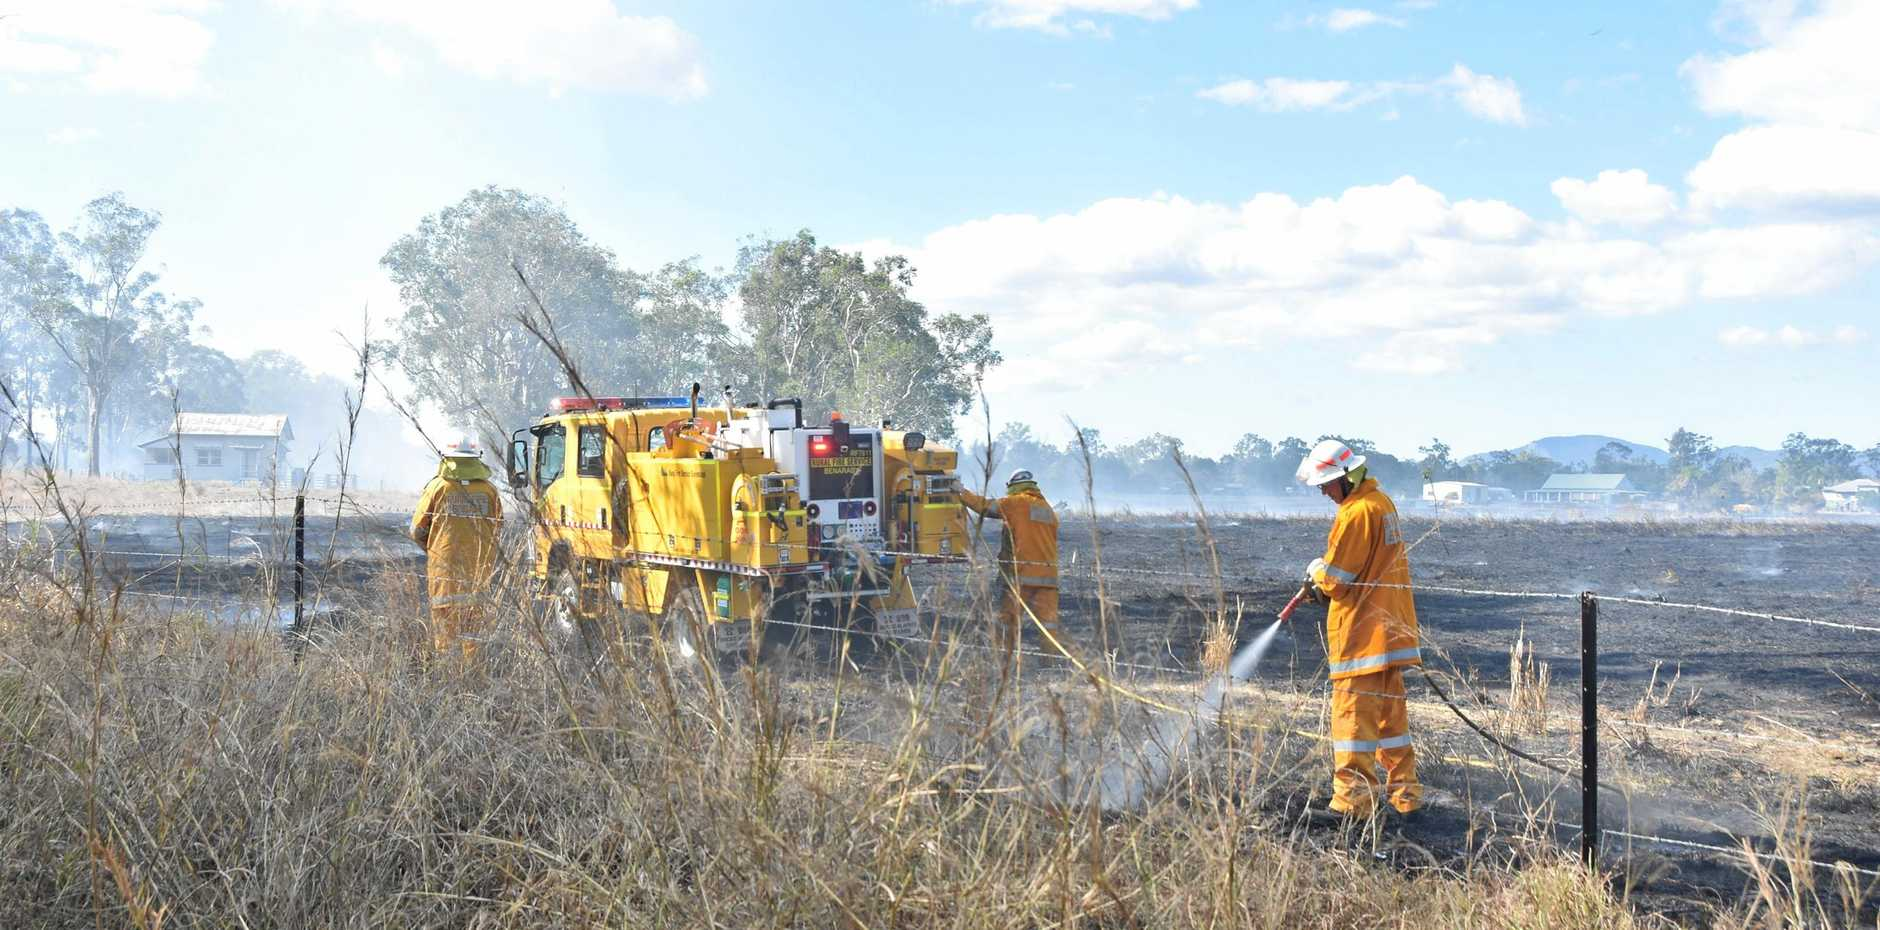 CLOSE CALL: Rural firefighters douse embers after putting out a fire at Bororen.